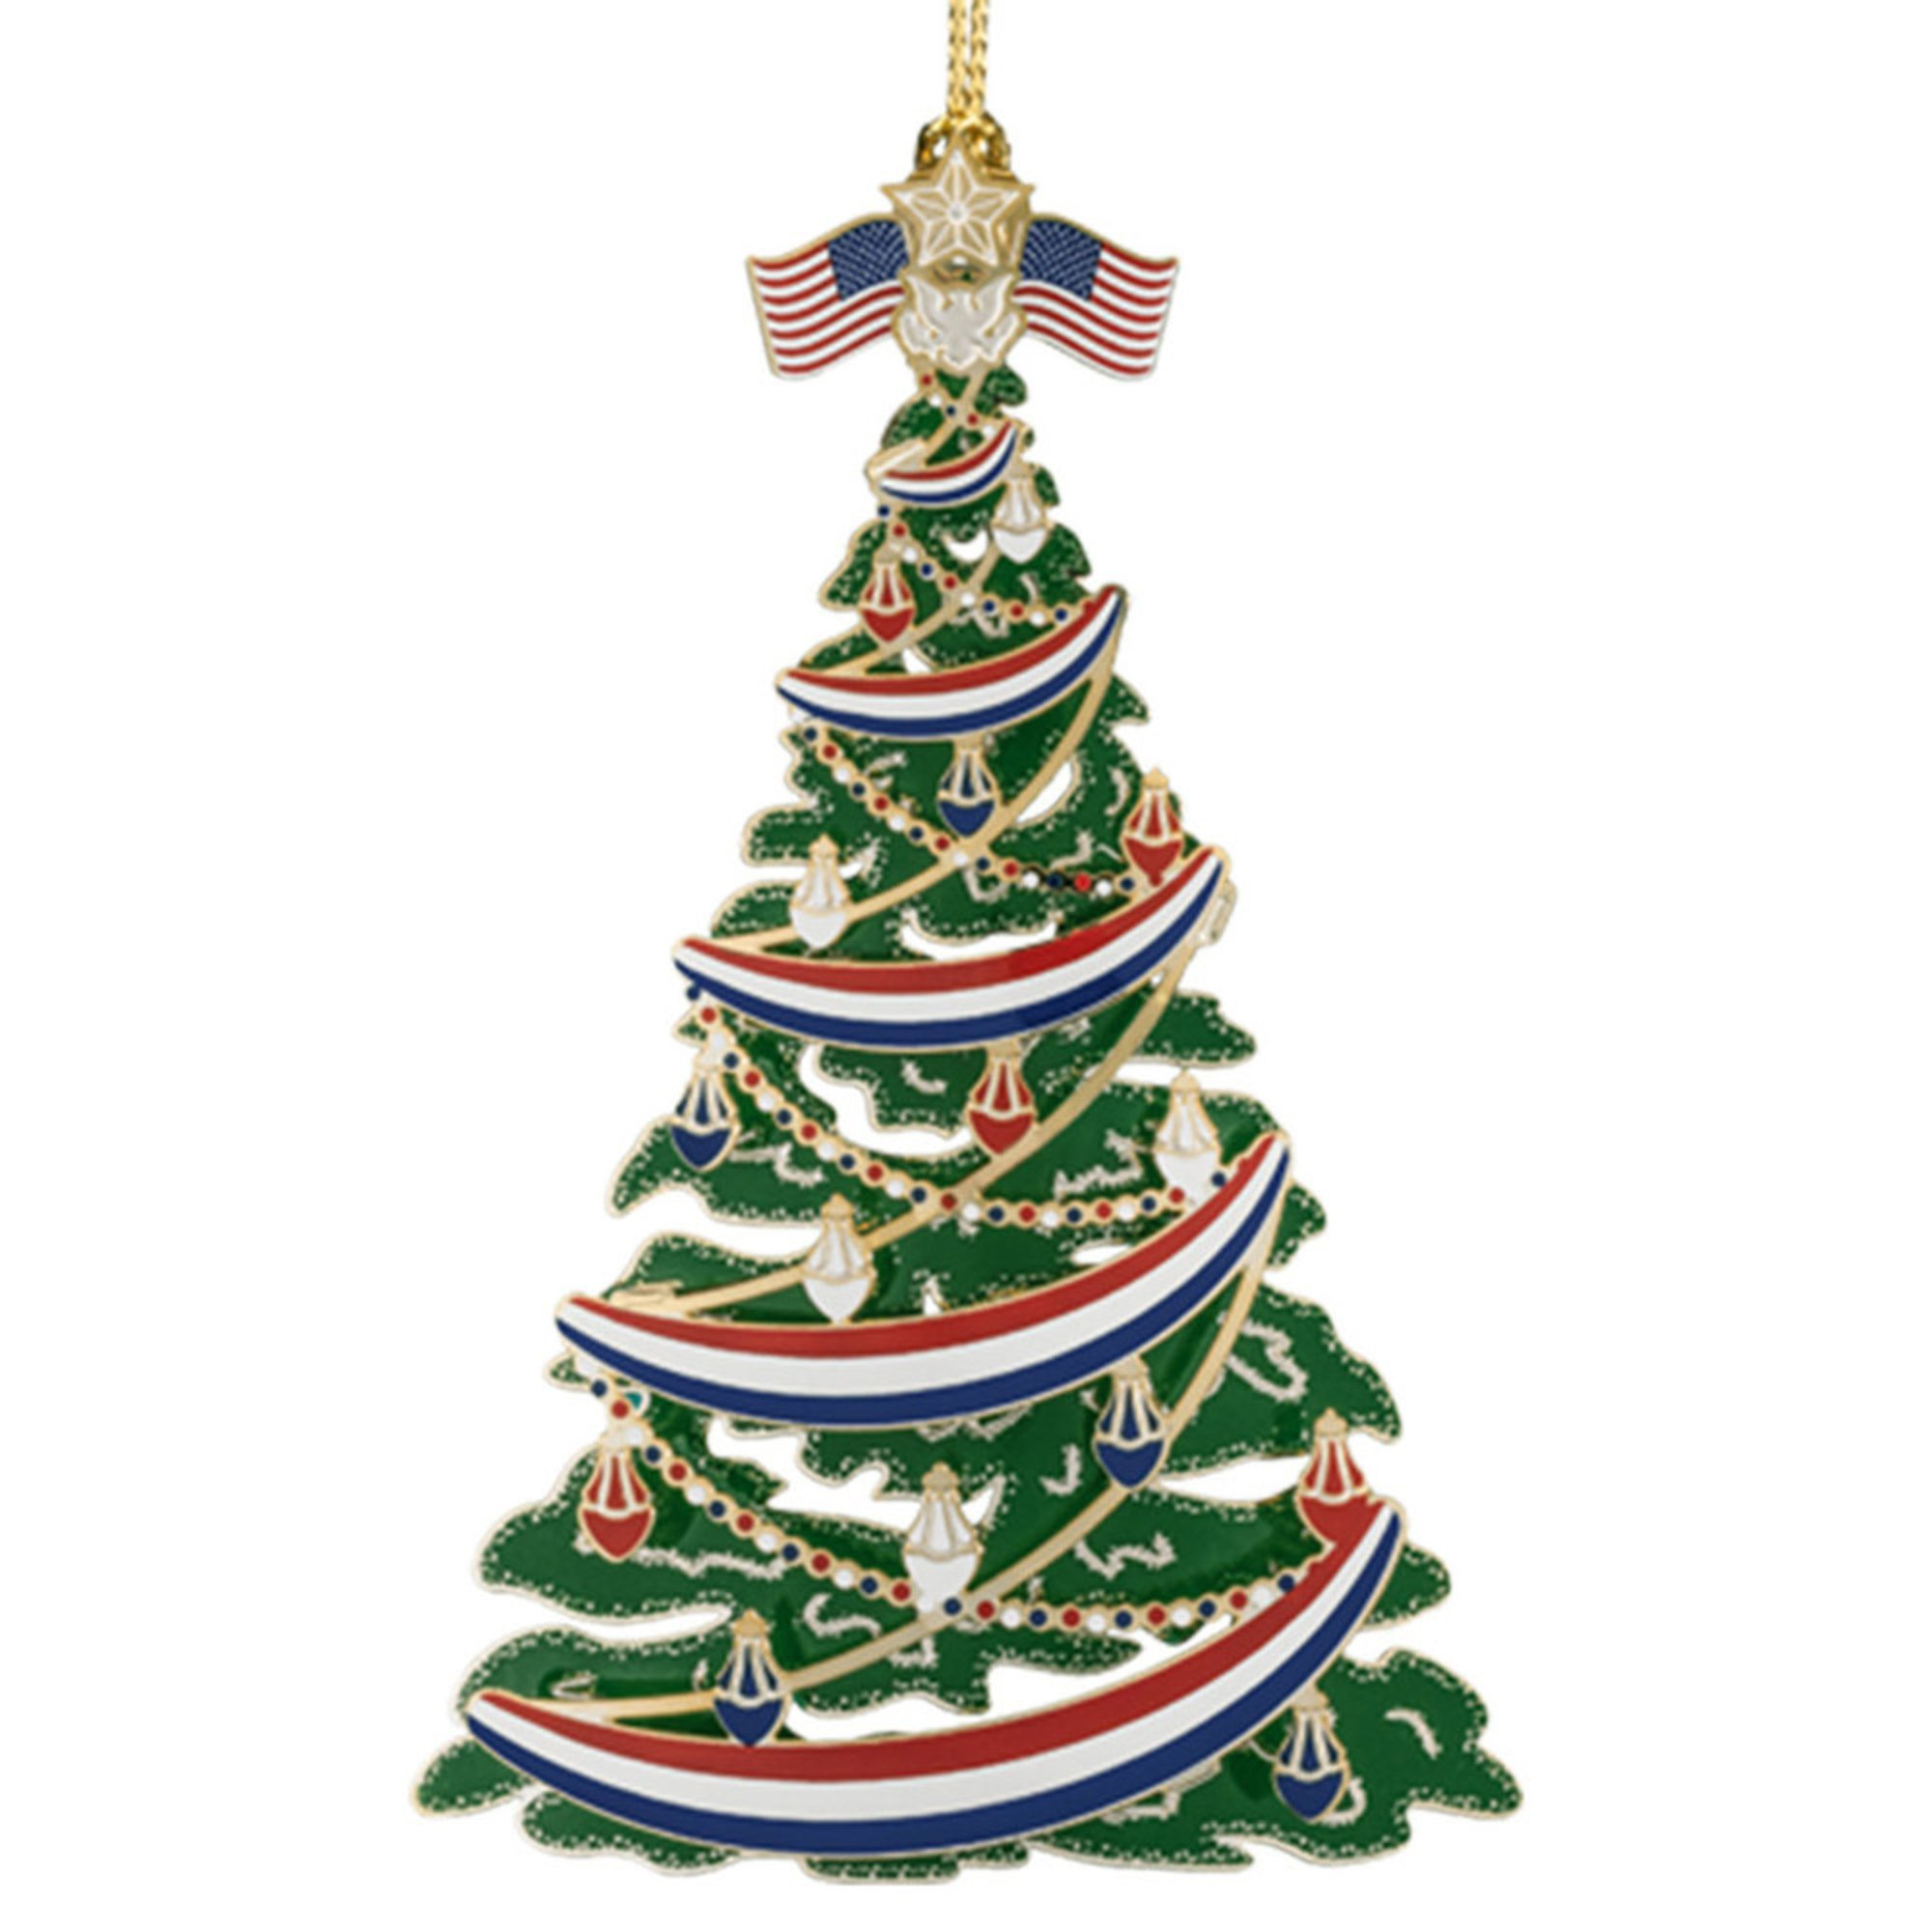 Chemart Classic Patriotic Christmas Tree Ornament | Navy Pride ...